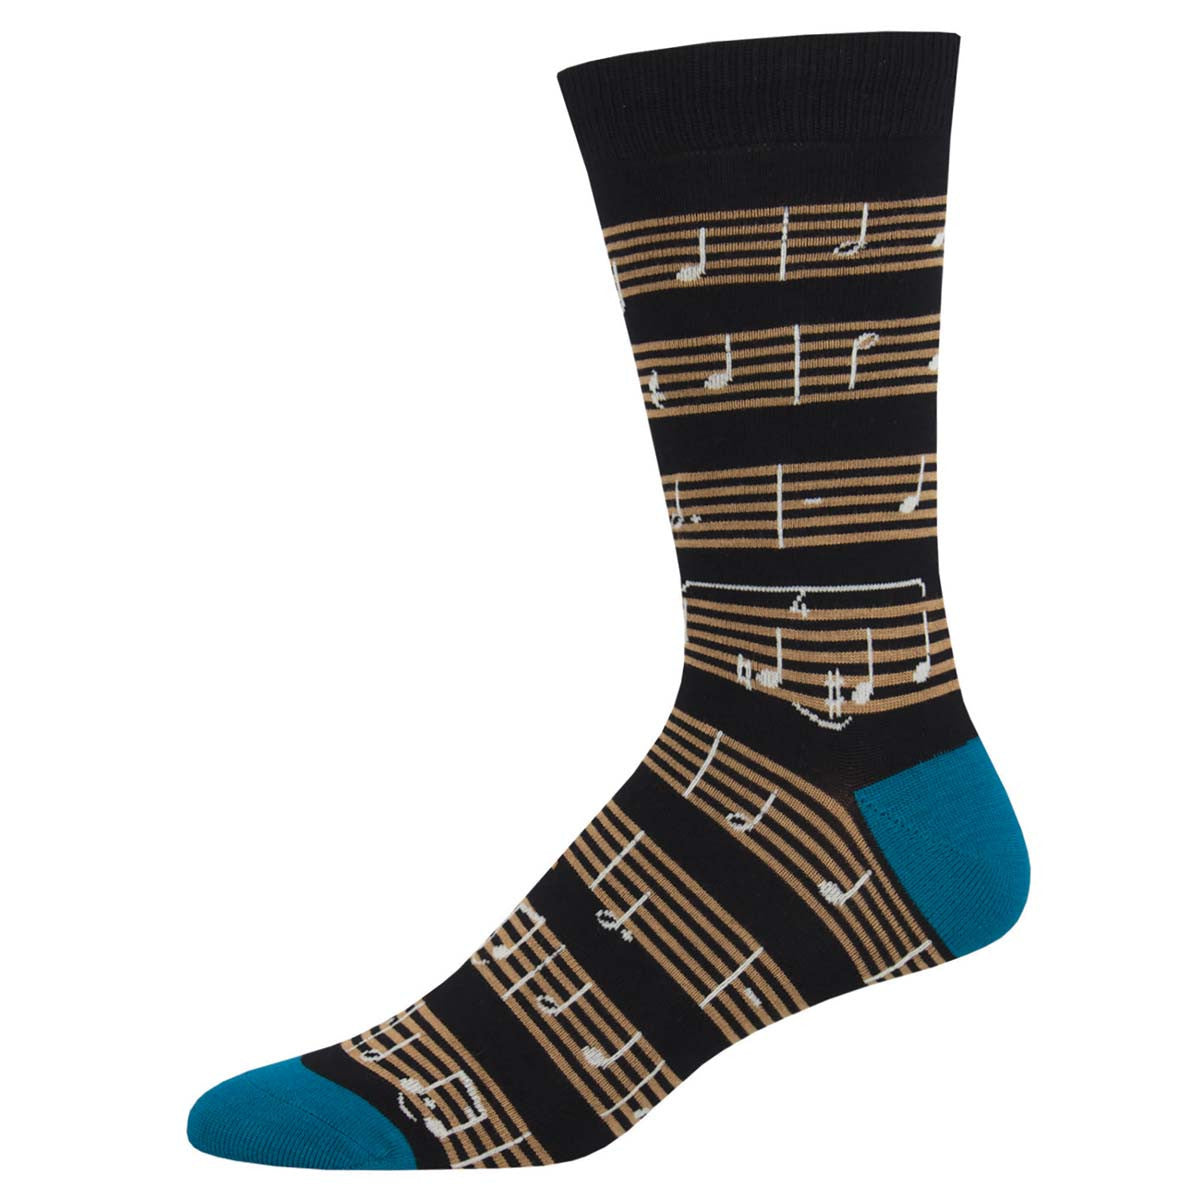 Men's Socks, Black Sheet Music With Blue Heel and Cuff